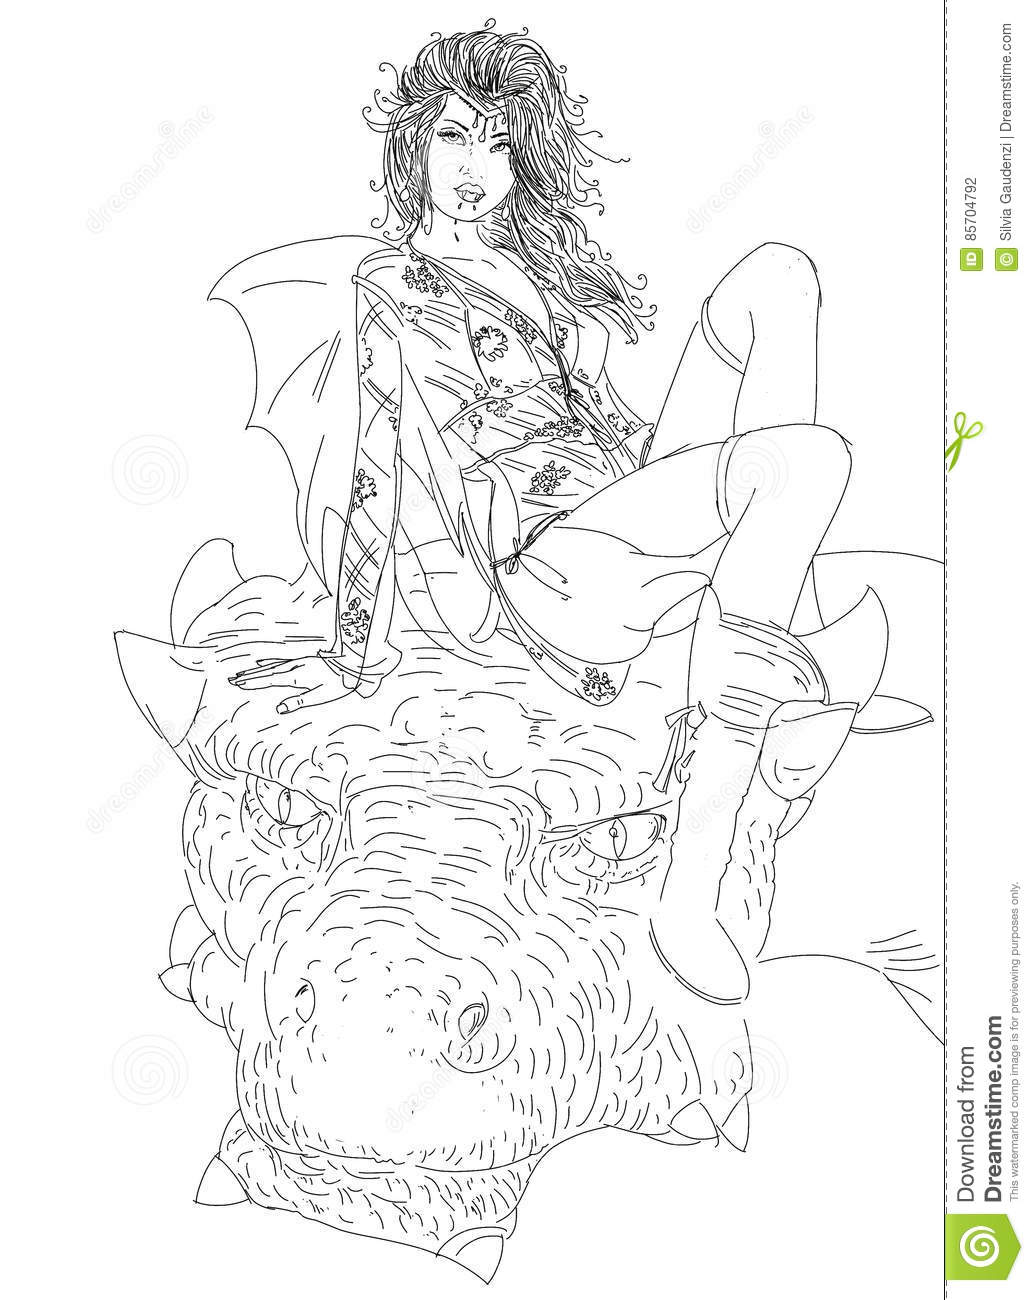 Woman vampire with dragon, woman riding a dragon in the night Starry and mysterious. comic inspired images gives free domain.